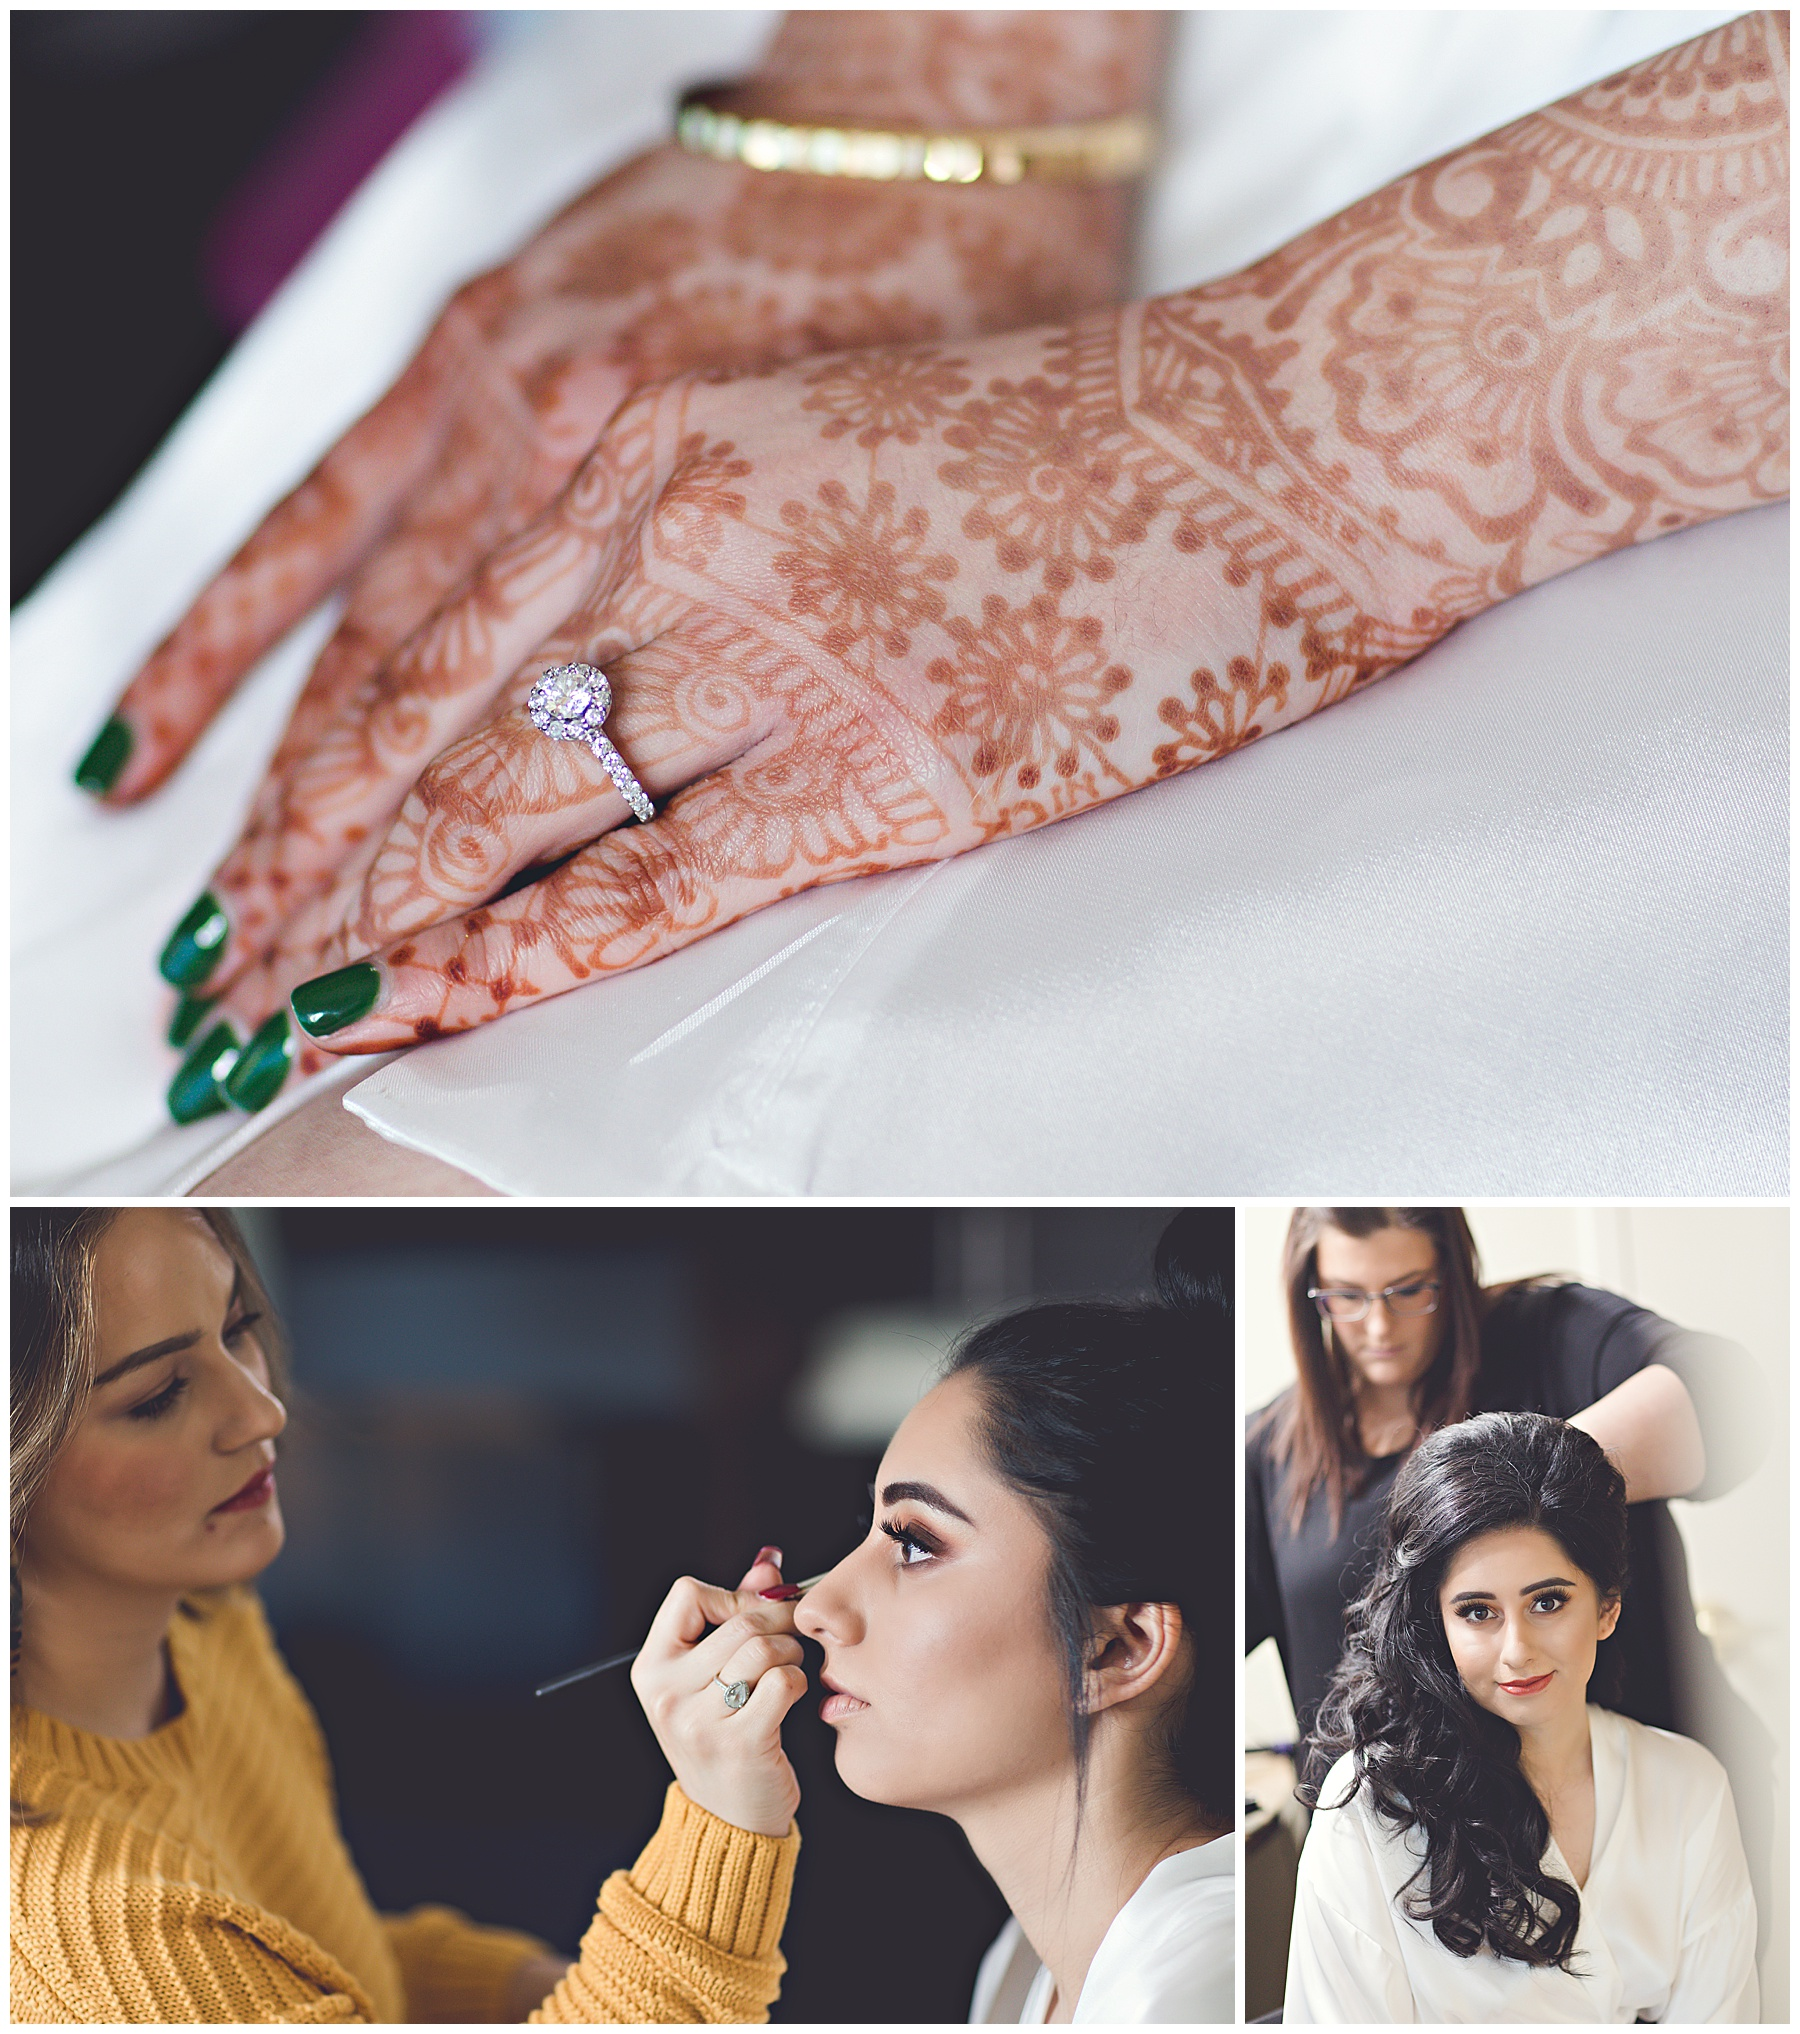 henna art on bride's hand